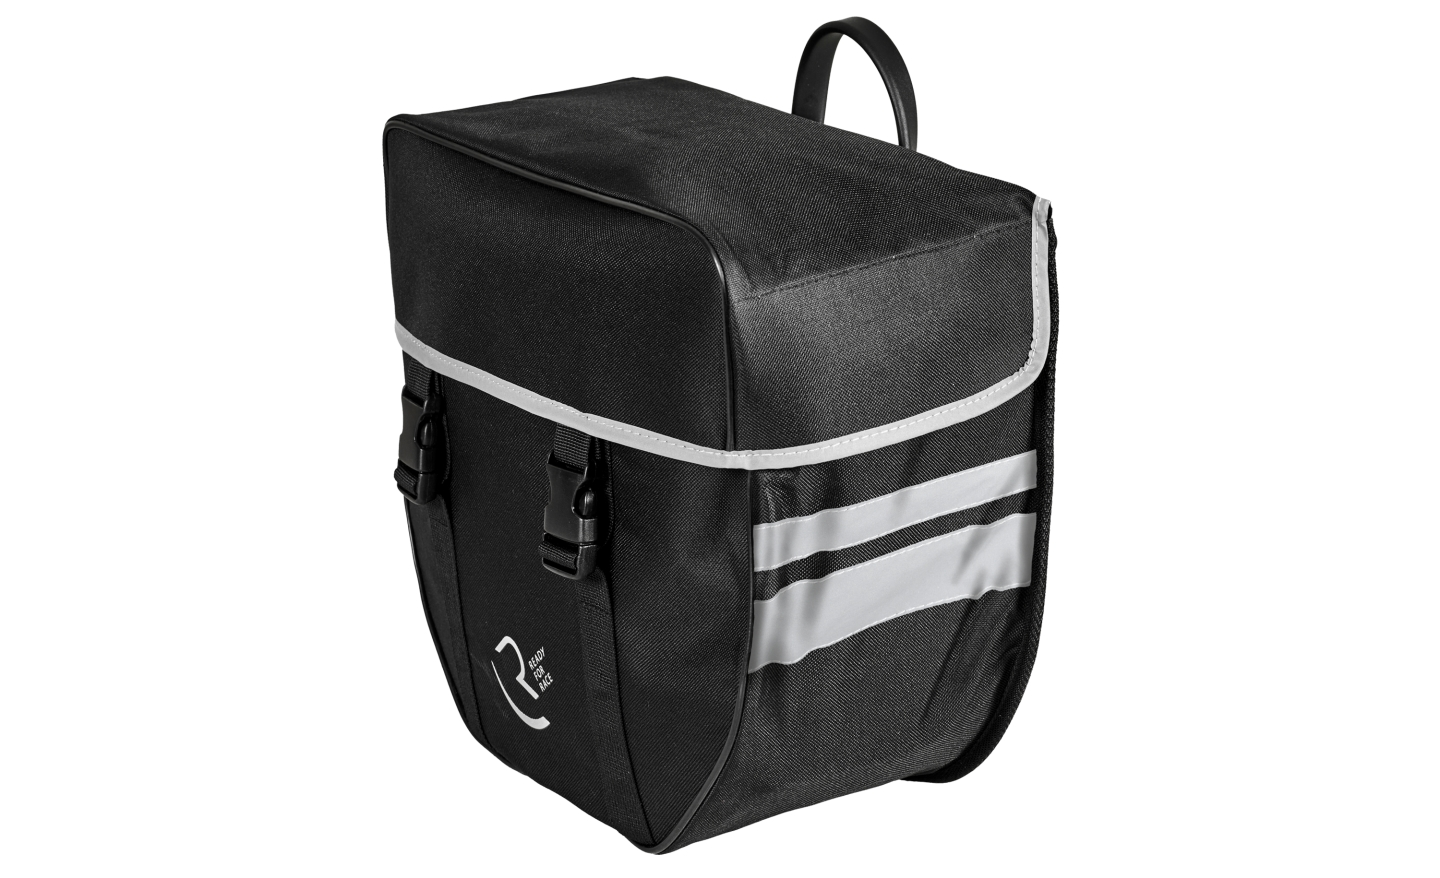 BISAGE RFR REAR CARRIER BAG BLACK 14047